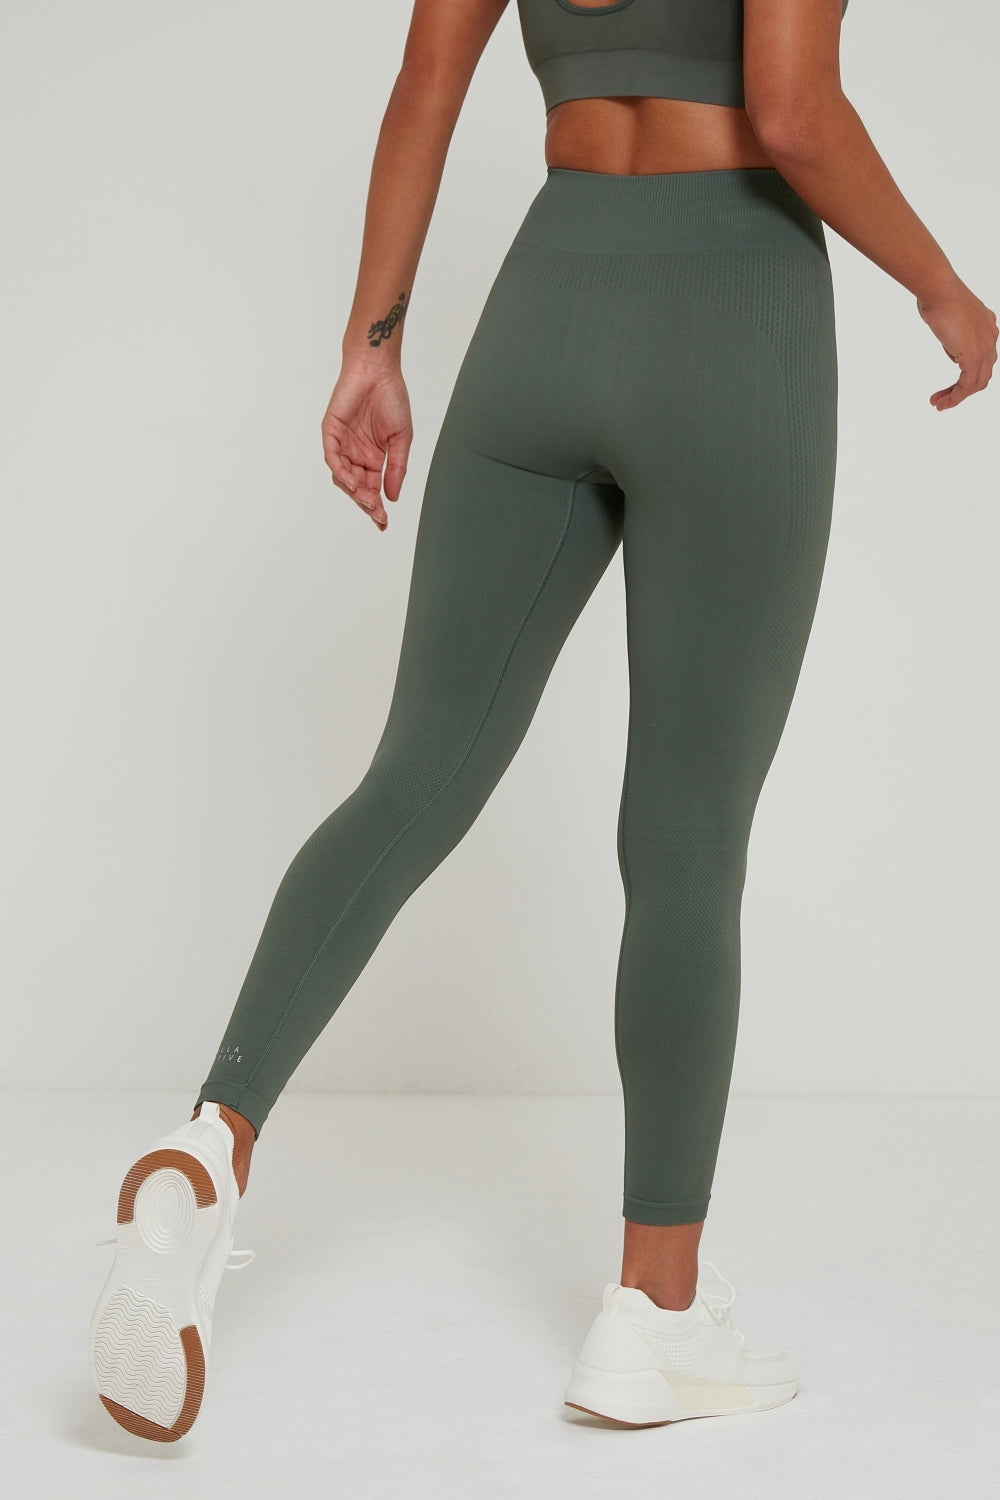 Spirit Seeker Leggings - Olive Green